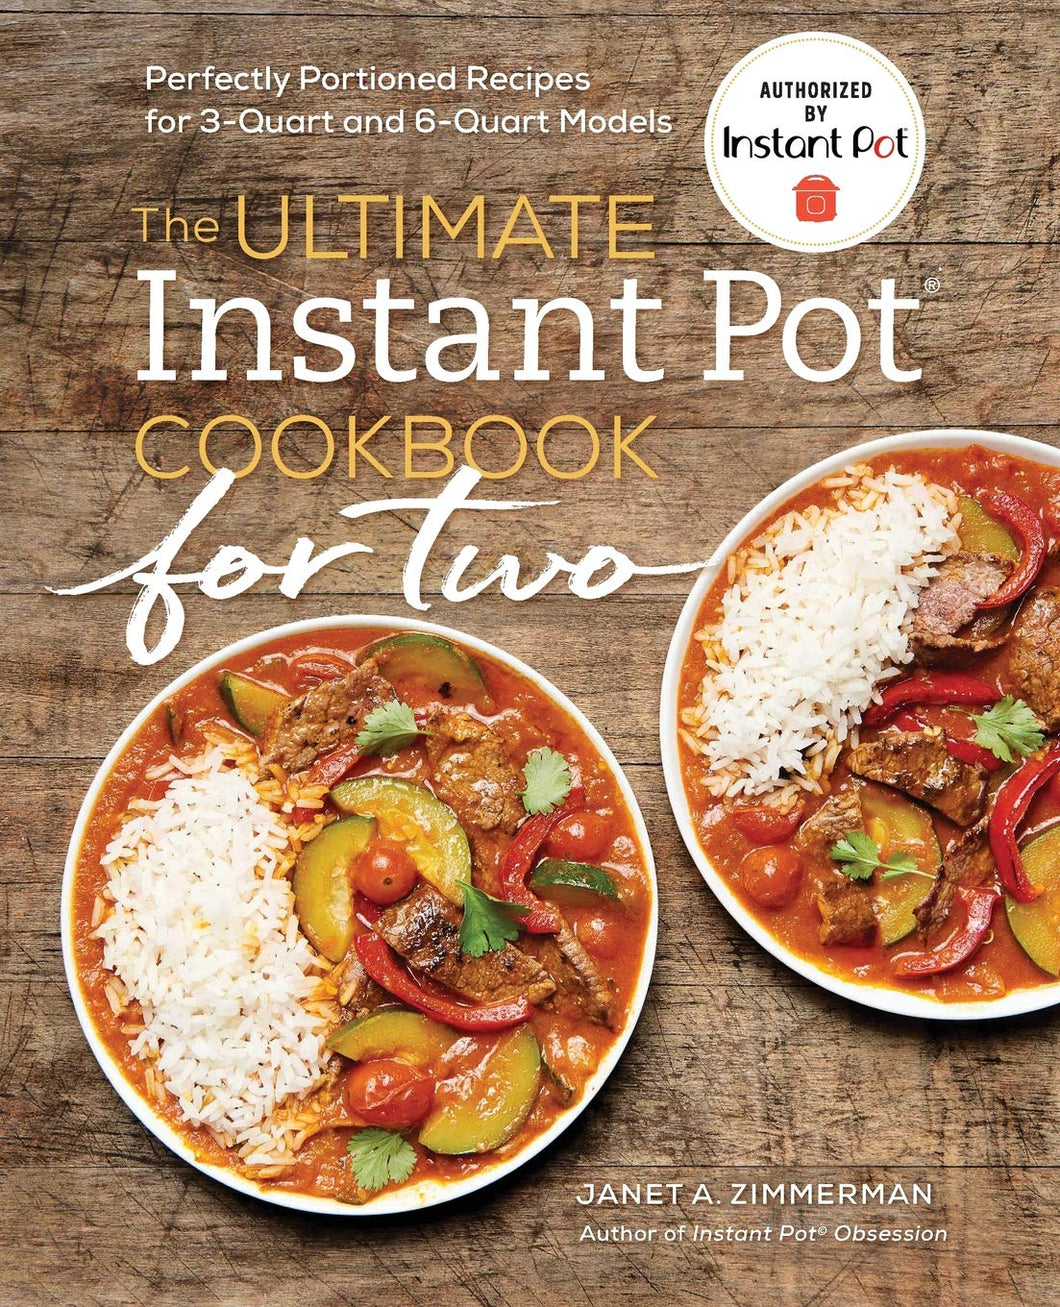 The Ultimate Instant Pot® Cookbook for Two: Perfectly Portioned Recipes for 3-Quart and 6-Quart Models - Tolerant Planet